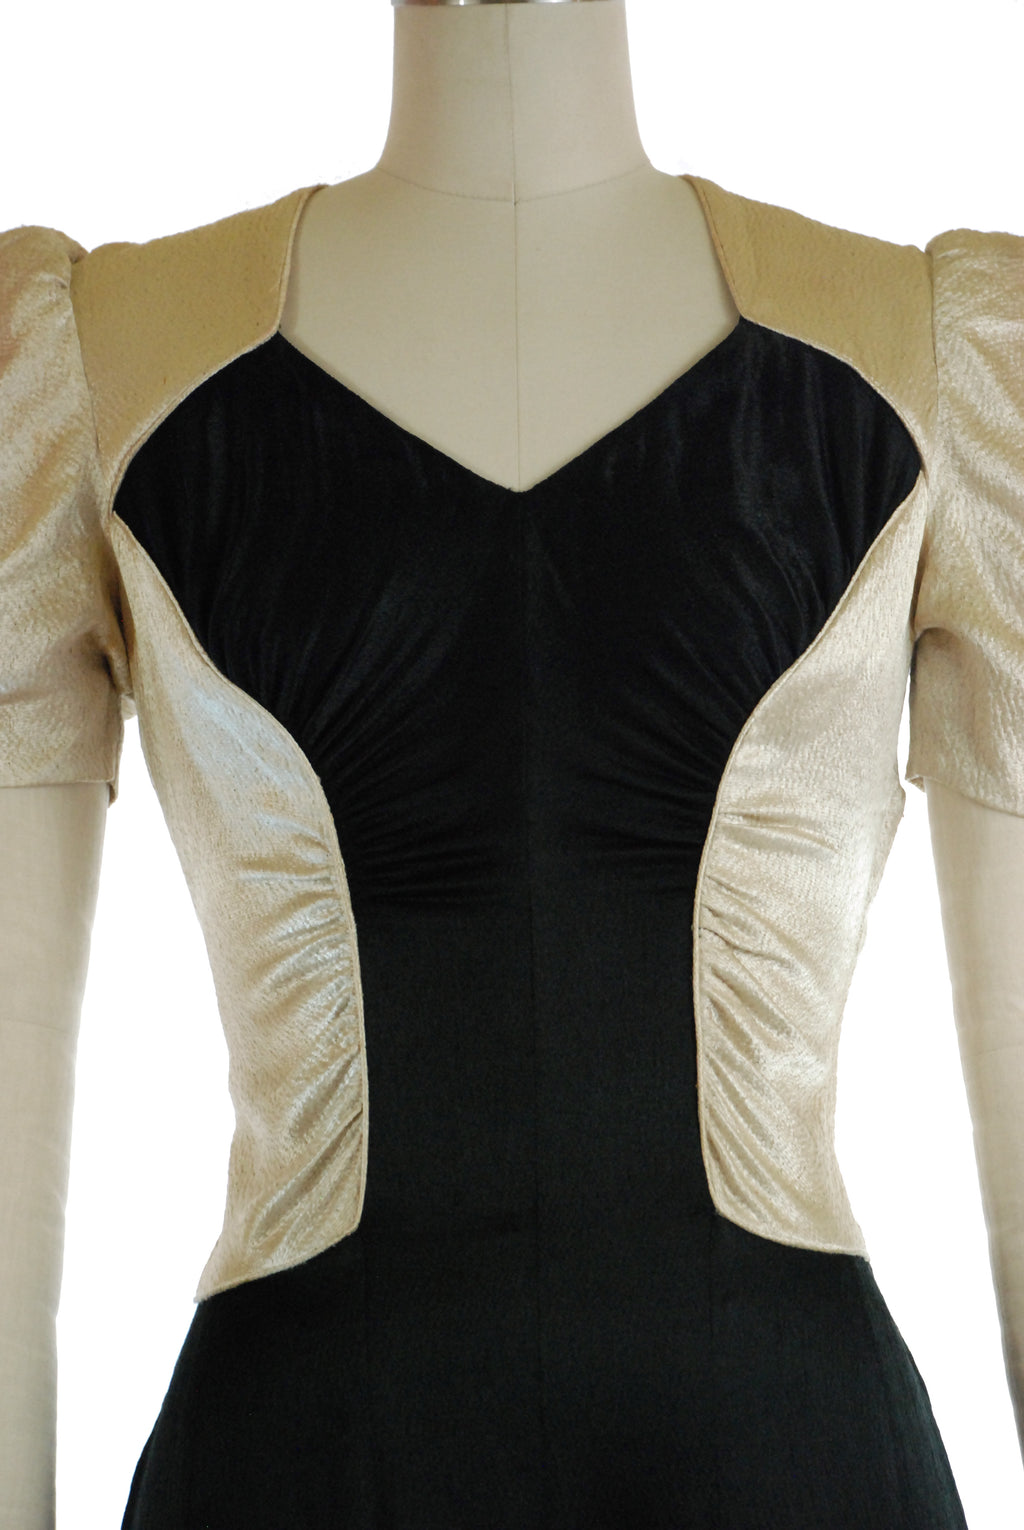 Exquisite 1930s Hammered Charmeuse Satin Evening Gown in Black and Ivory Color Block by Jean-Louise, Toronto